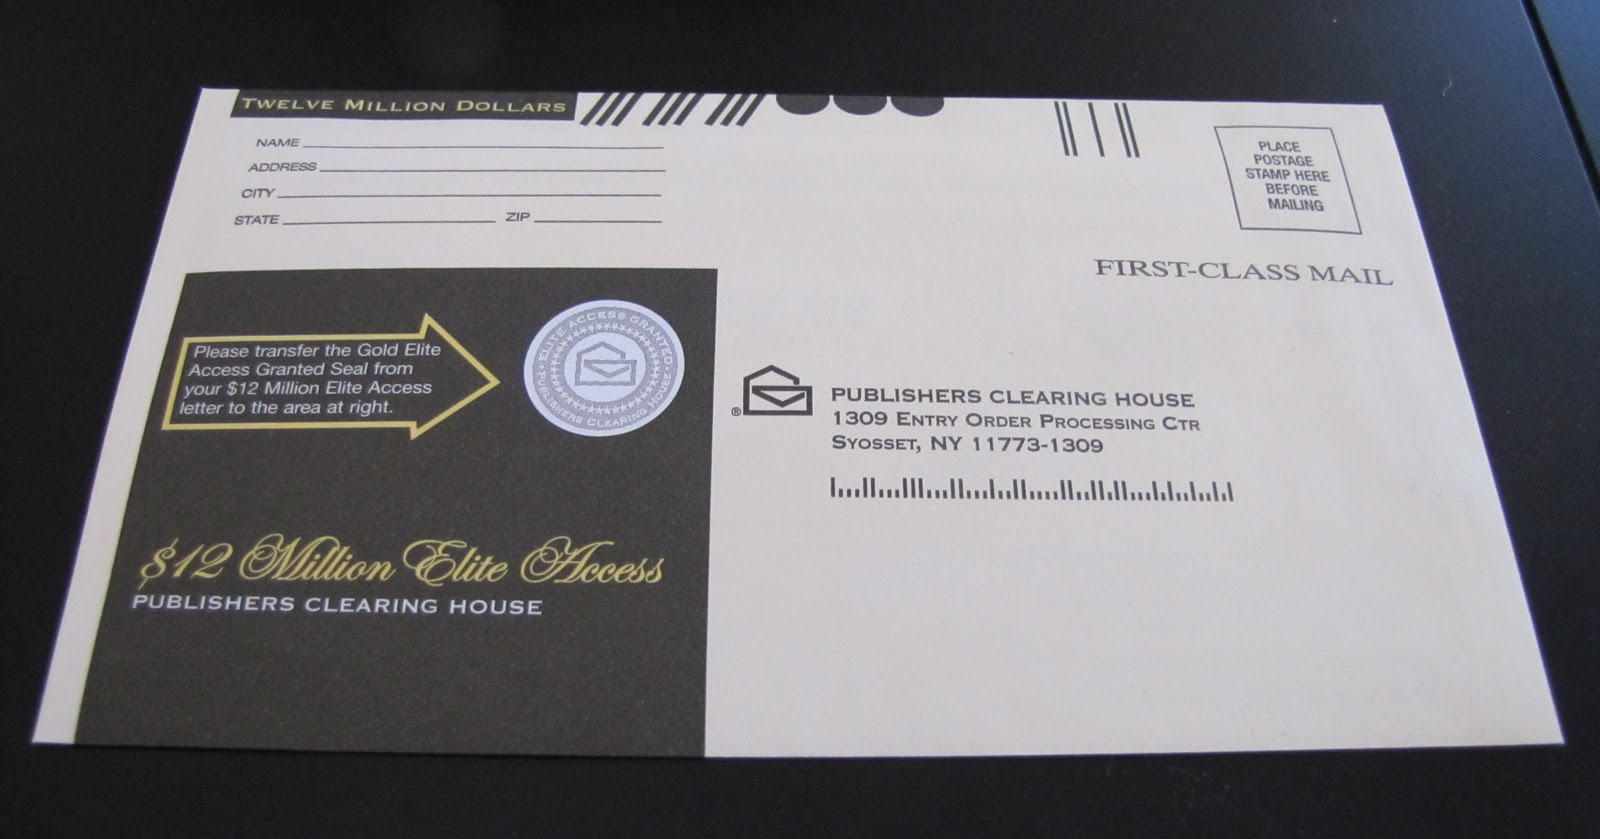 Clearing House Envelope http://iwpsd.net/publishers-clearing-house